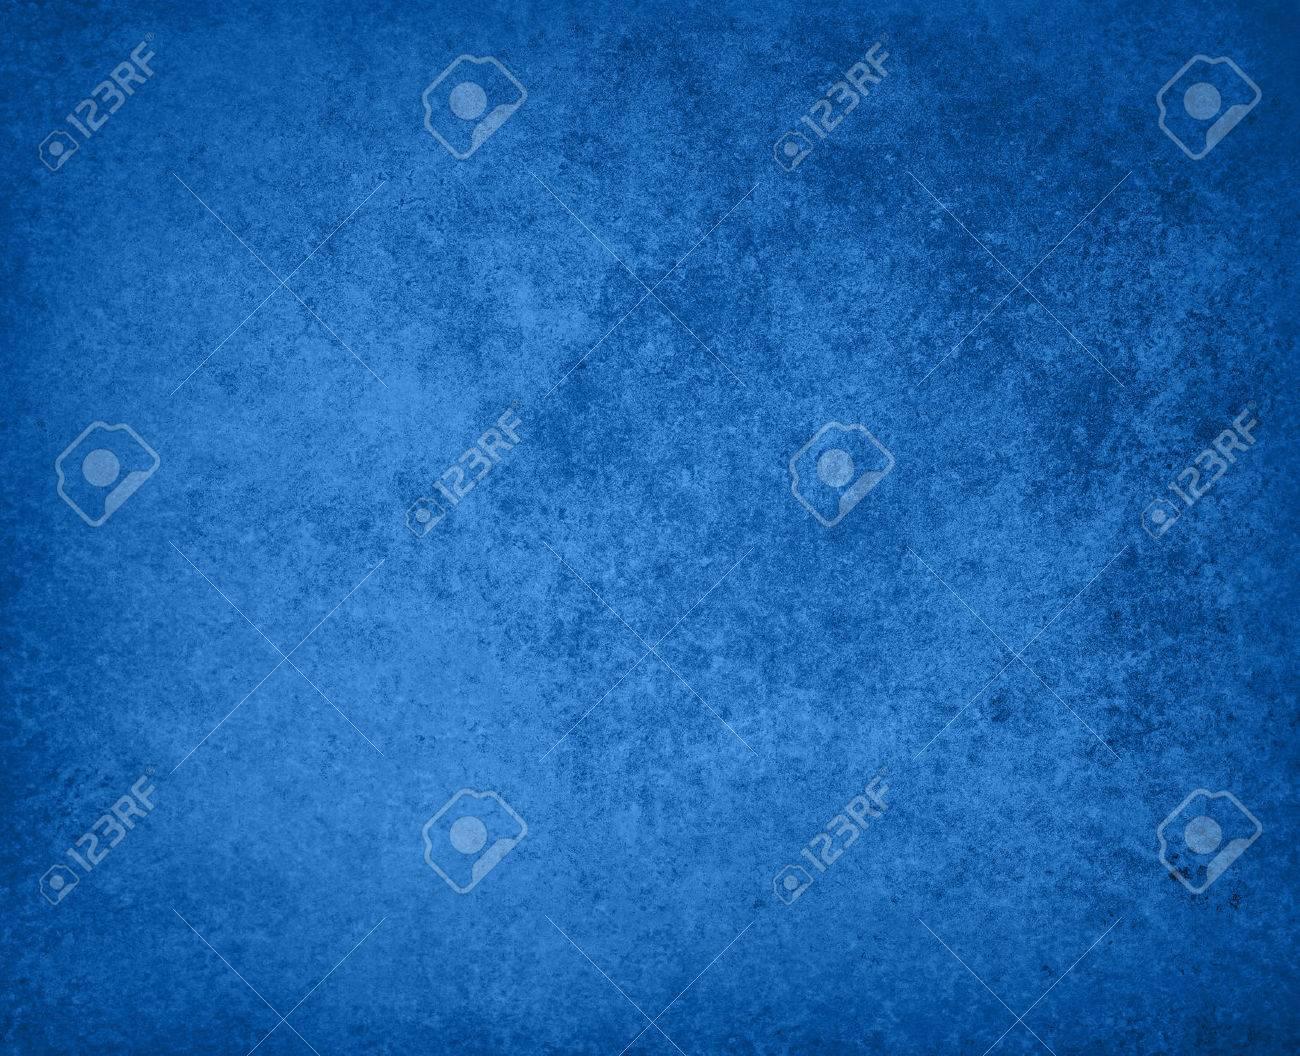 abstract blue background faded stain colors with sponge vintage grunge background texture, distressed rough smeary paint on wall, art canvas or board for brochure ad or website template Stock Photo - 23267295